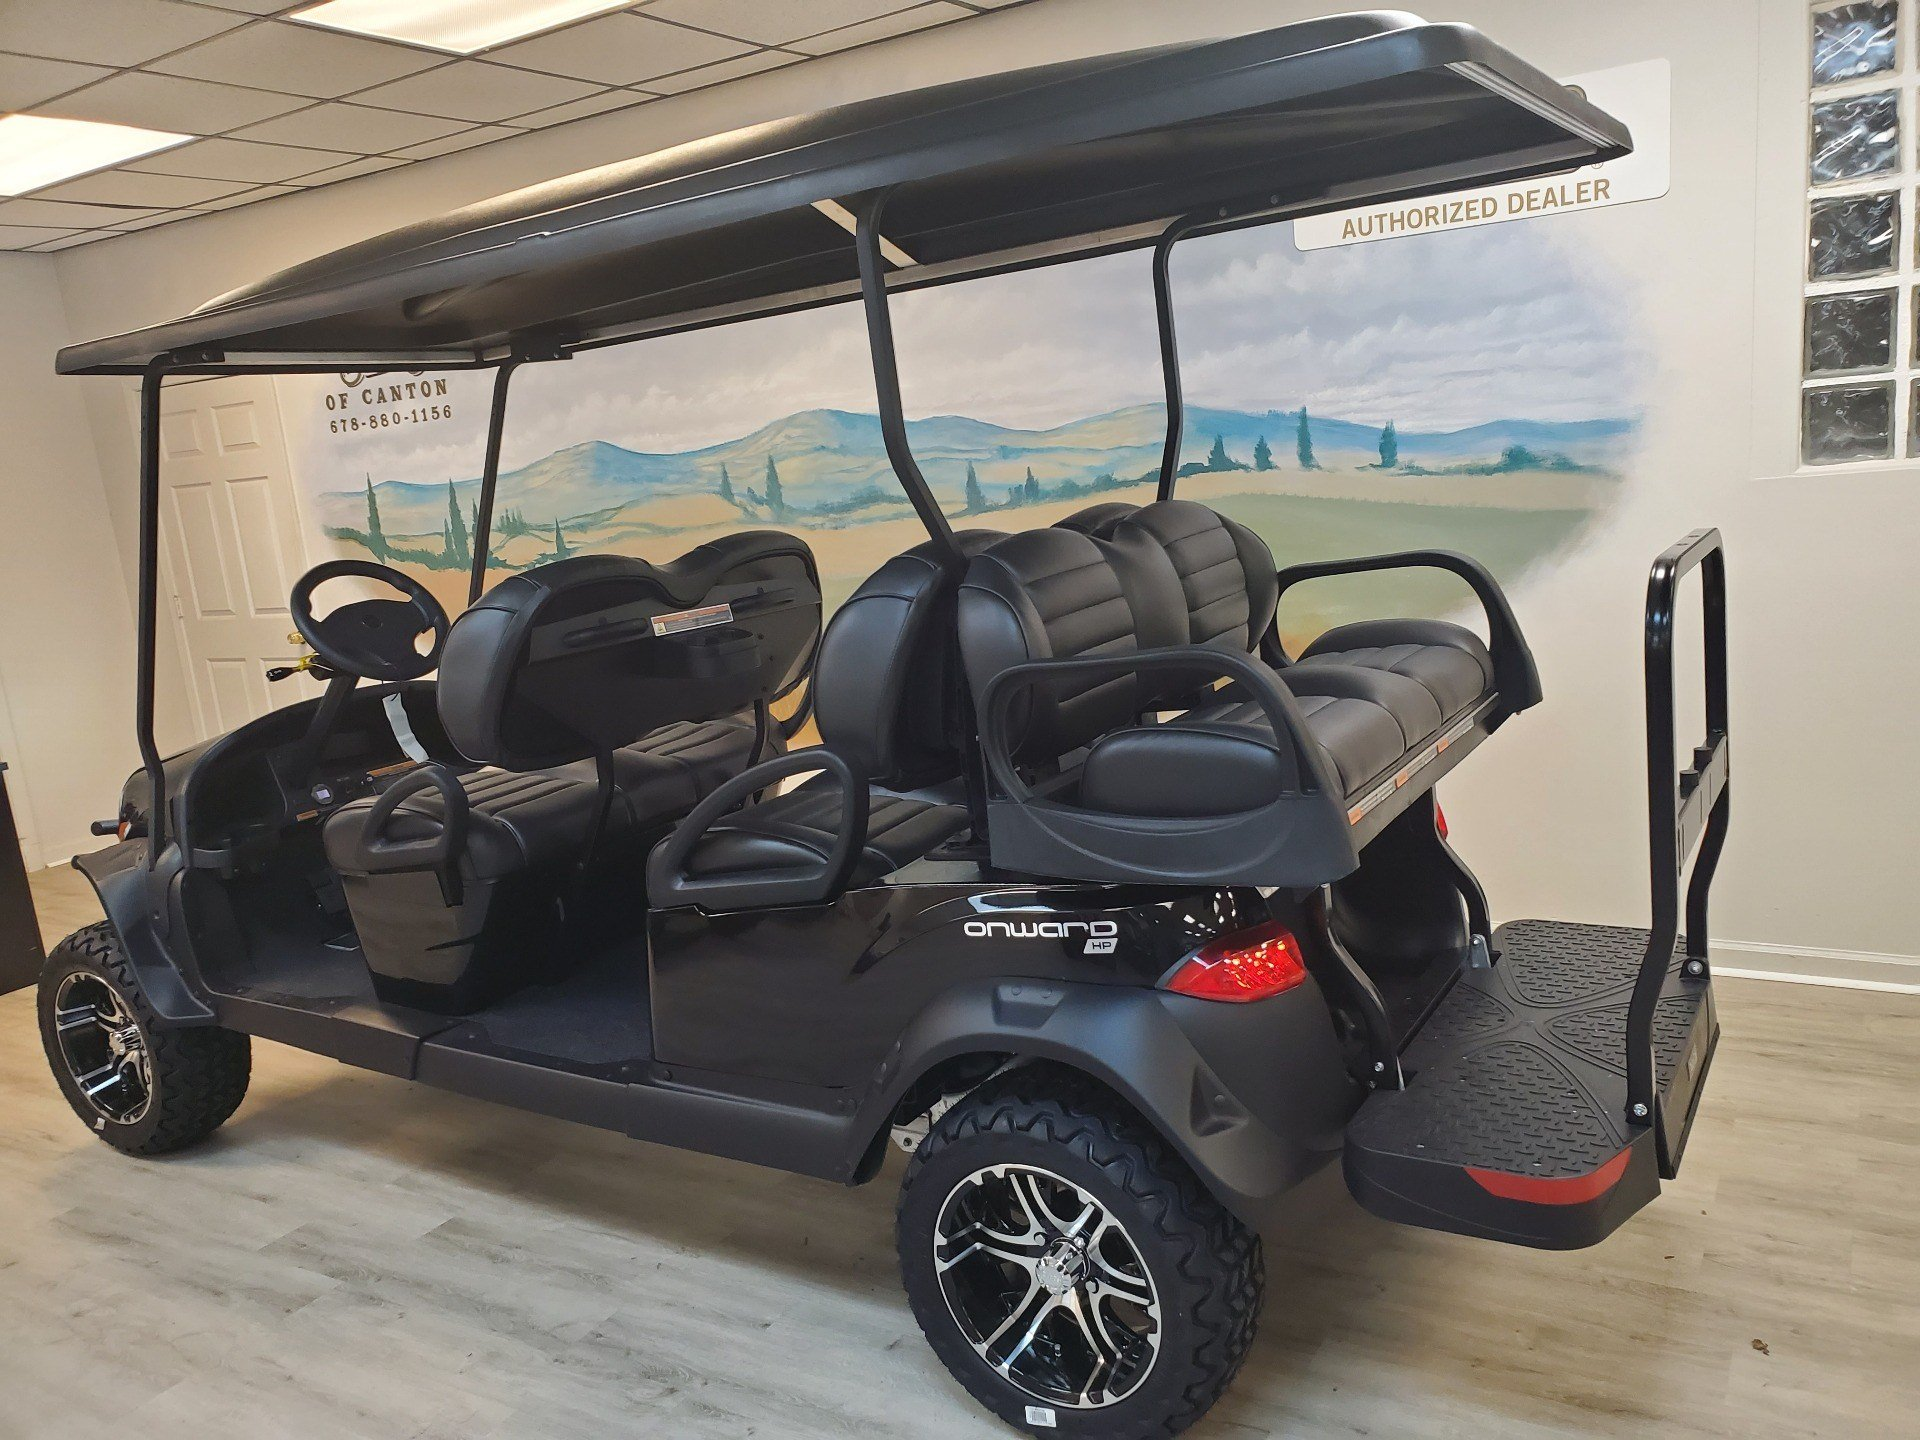 2021 Club Car Onward Lifted 6 Passenger HP Electric in Canton, Georgia - Photo 6